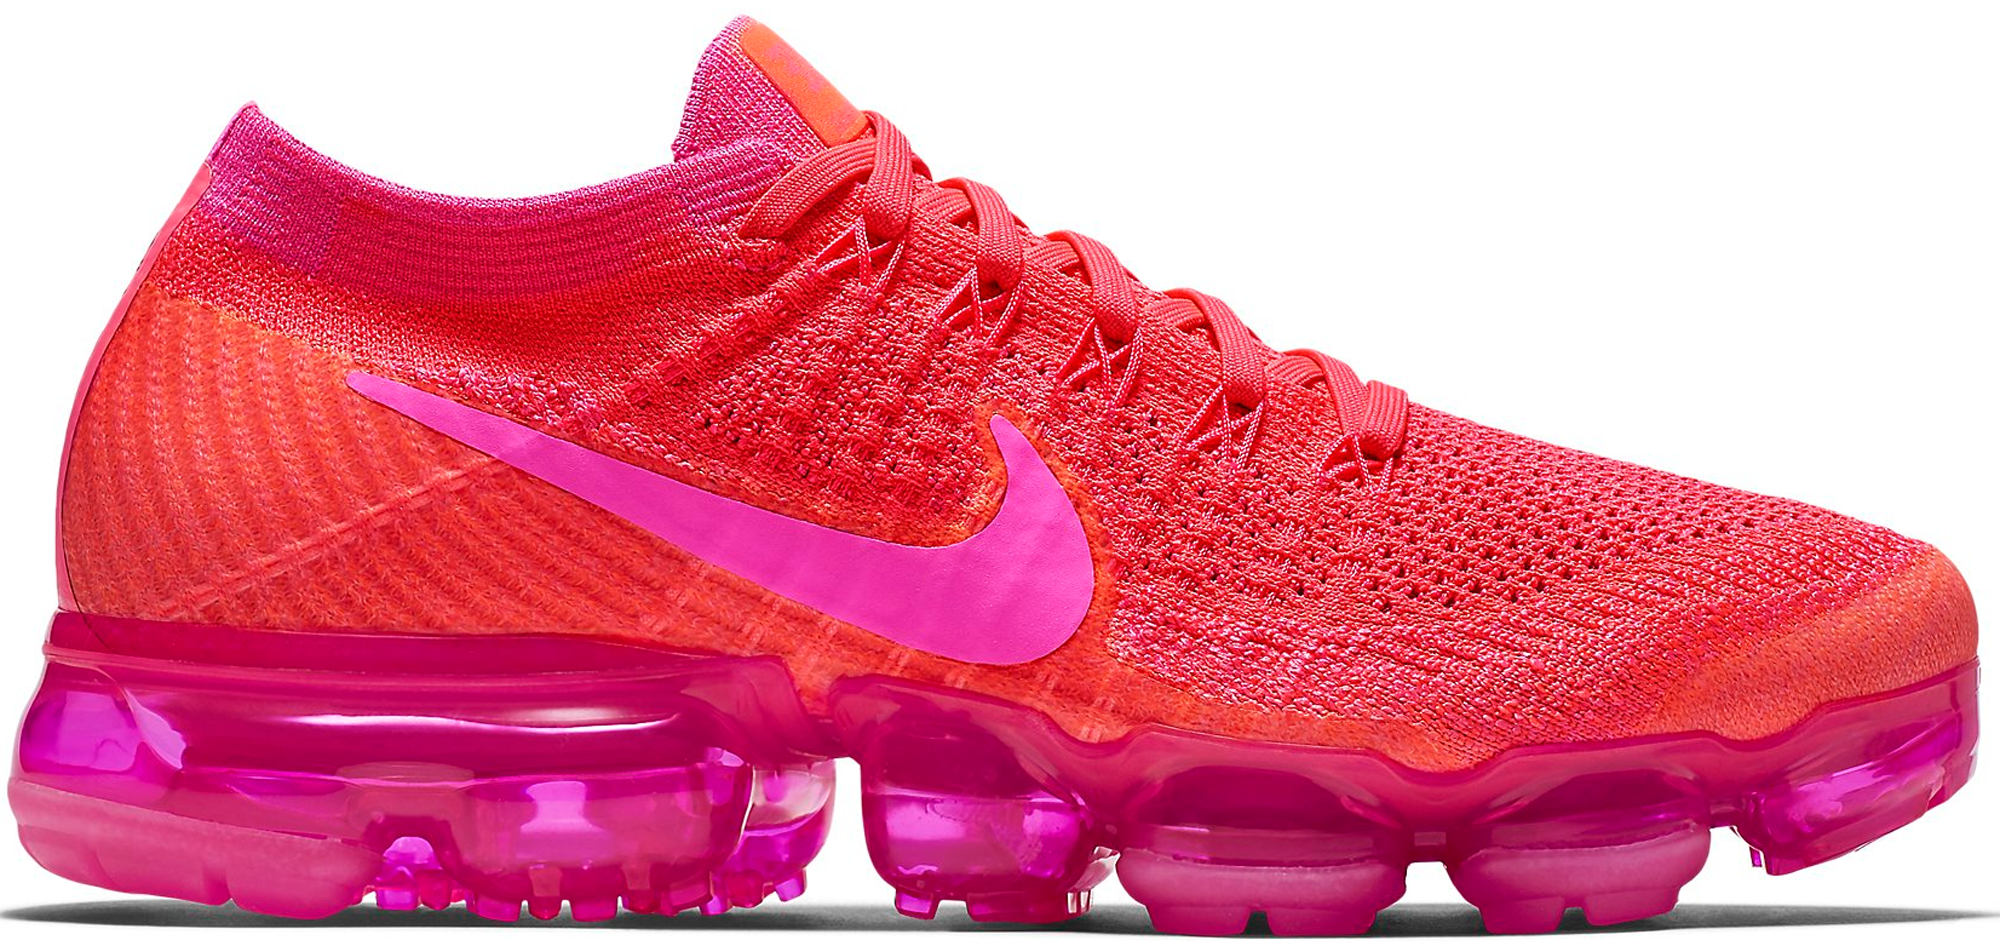 d5936f8670fbd Women s Nike Air VaporMax Flyknit Hyper Punch - StockX News